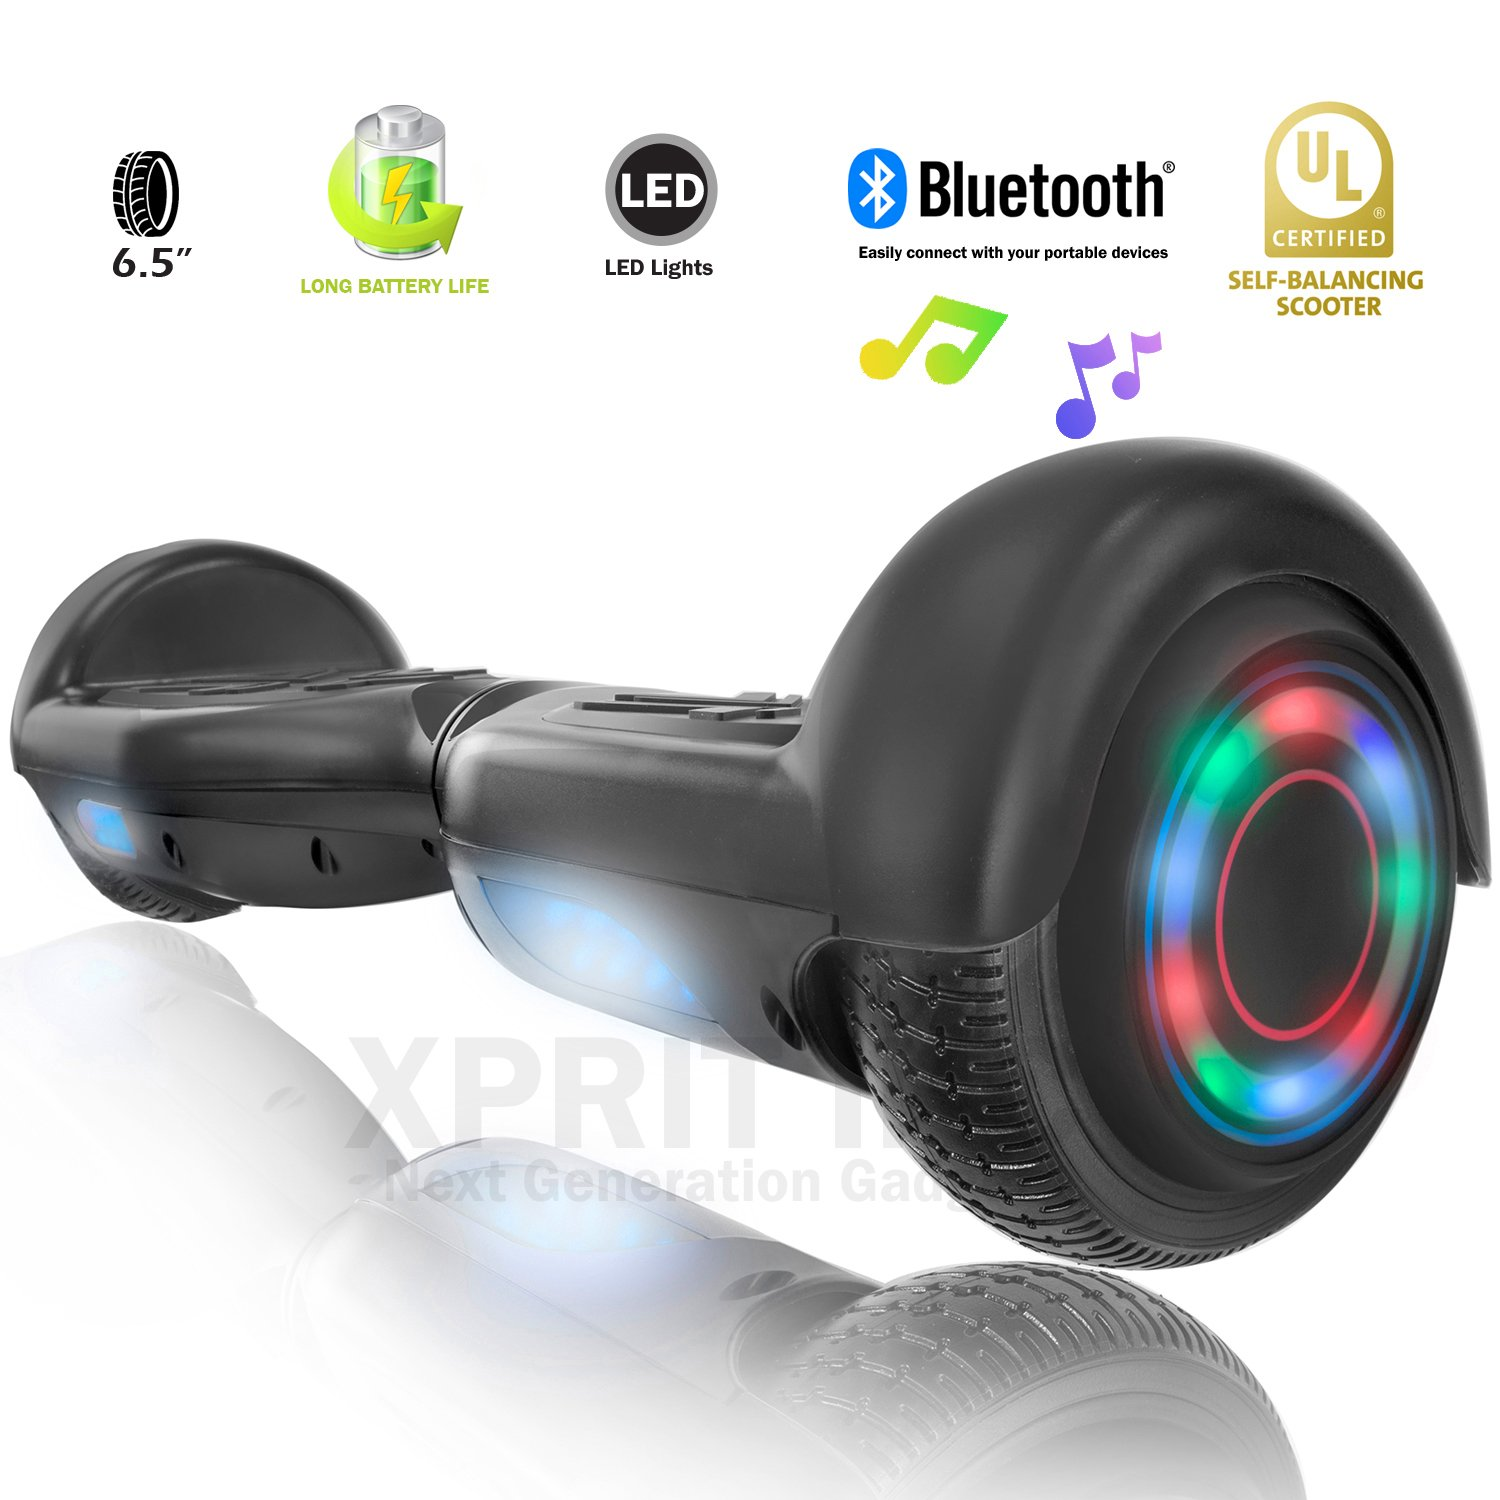 XPRIT Hoverboard w/Bluetooth Speaker (Black) by XPRIT (Image #1)